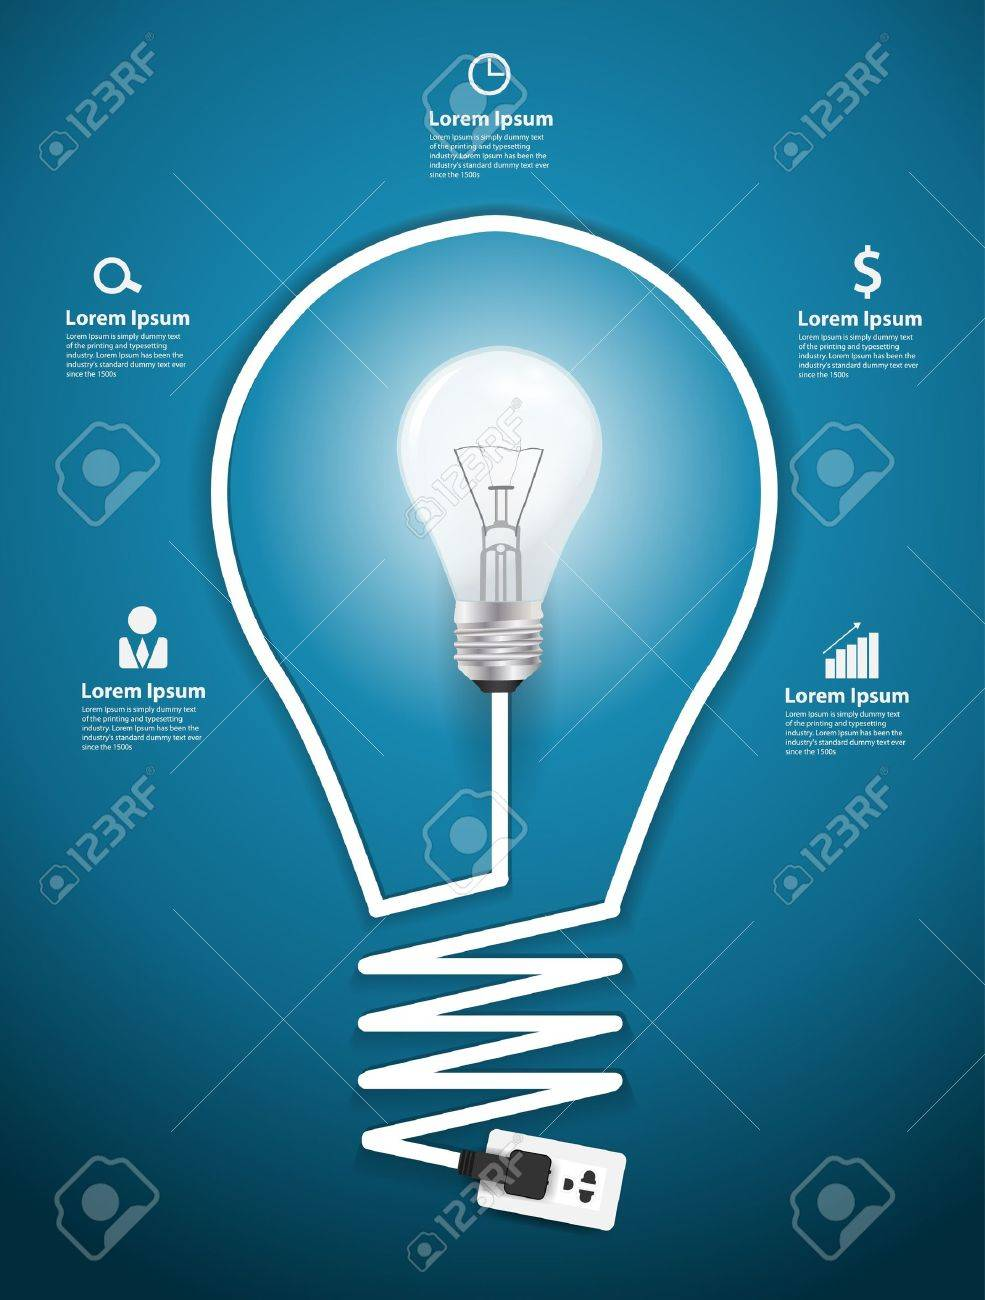 Creative Light Bulb Abstract Infographic Modern Design Template Incandescent Diagram Workflow Layout Step Up Options